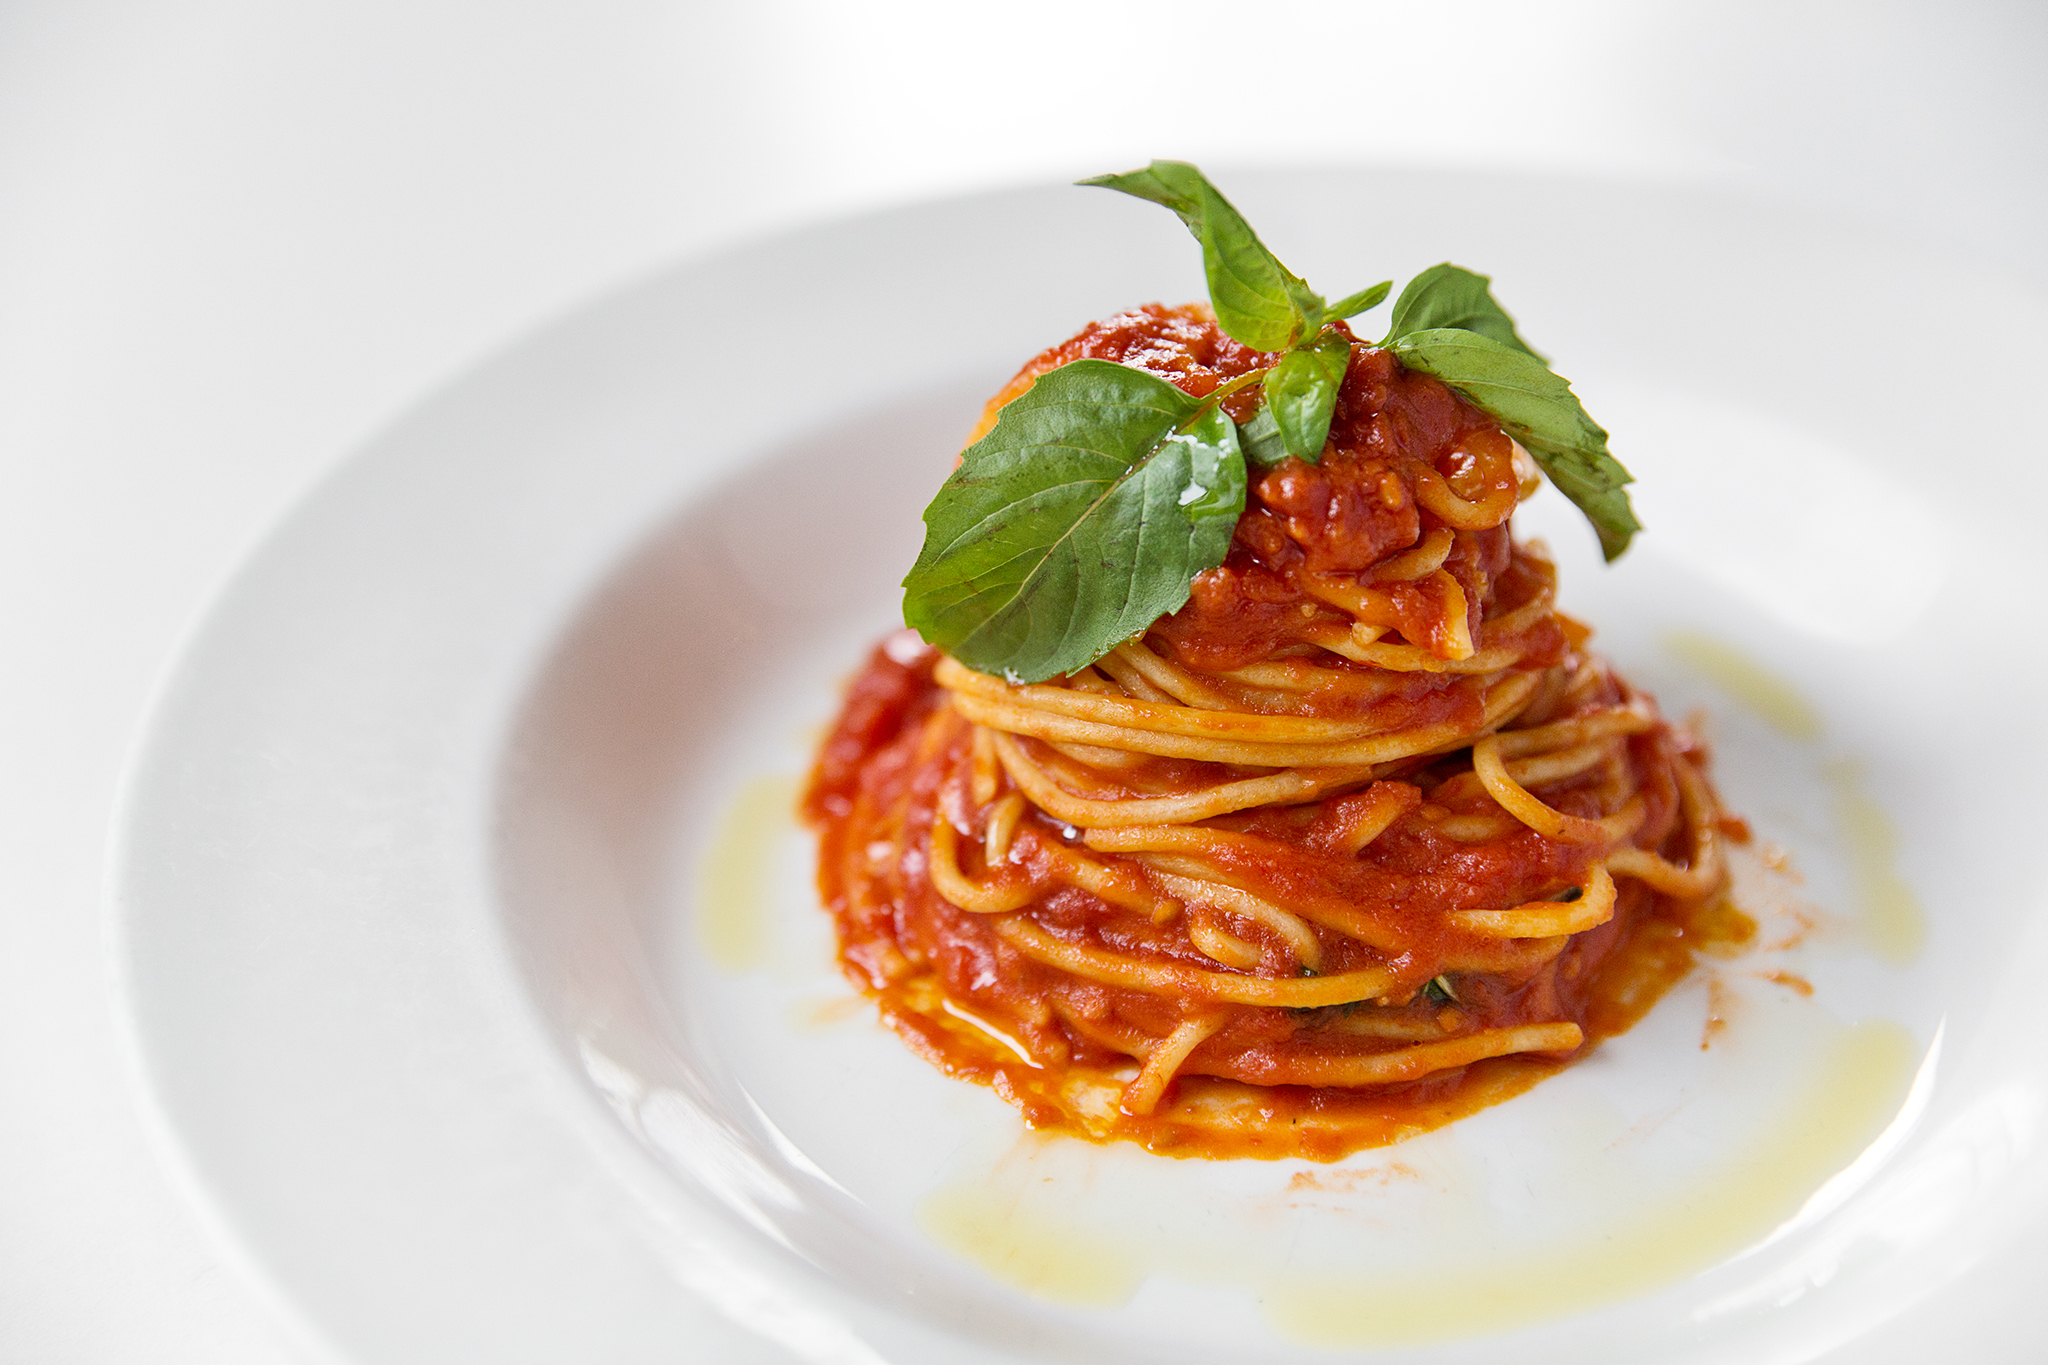 The best Italian restaurants in town